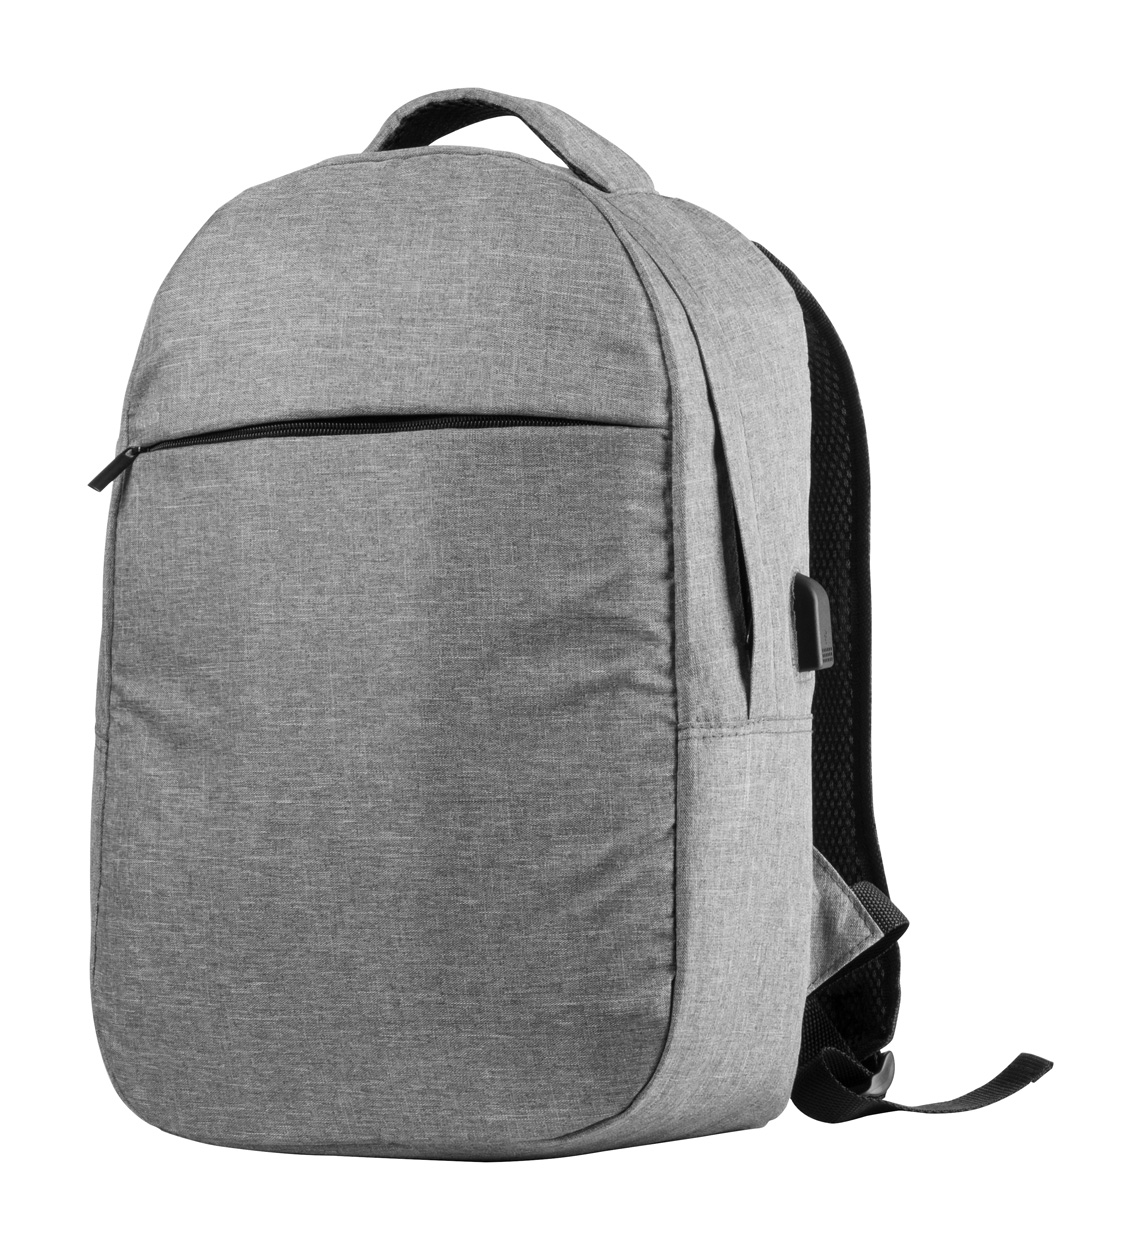 Rigal backpack